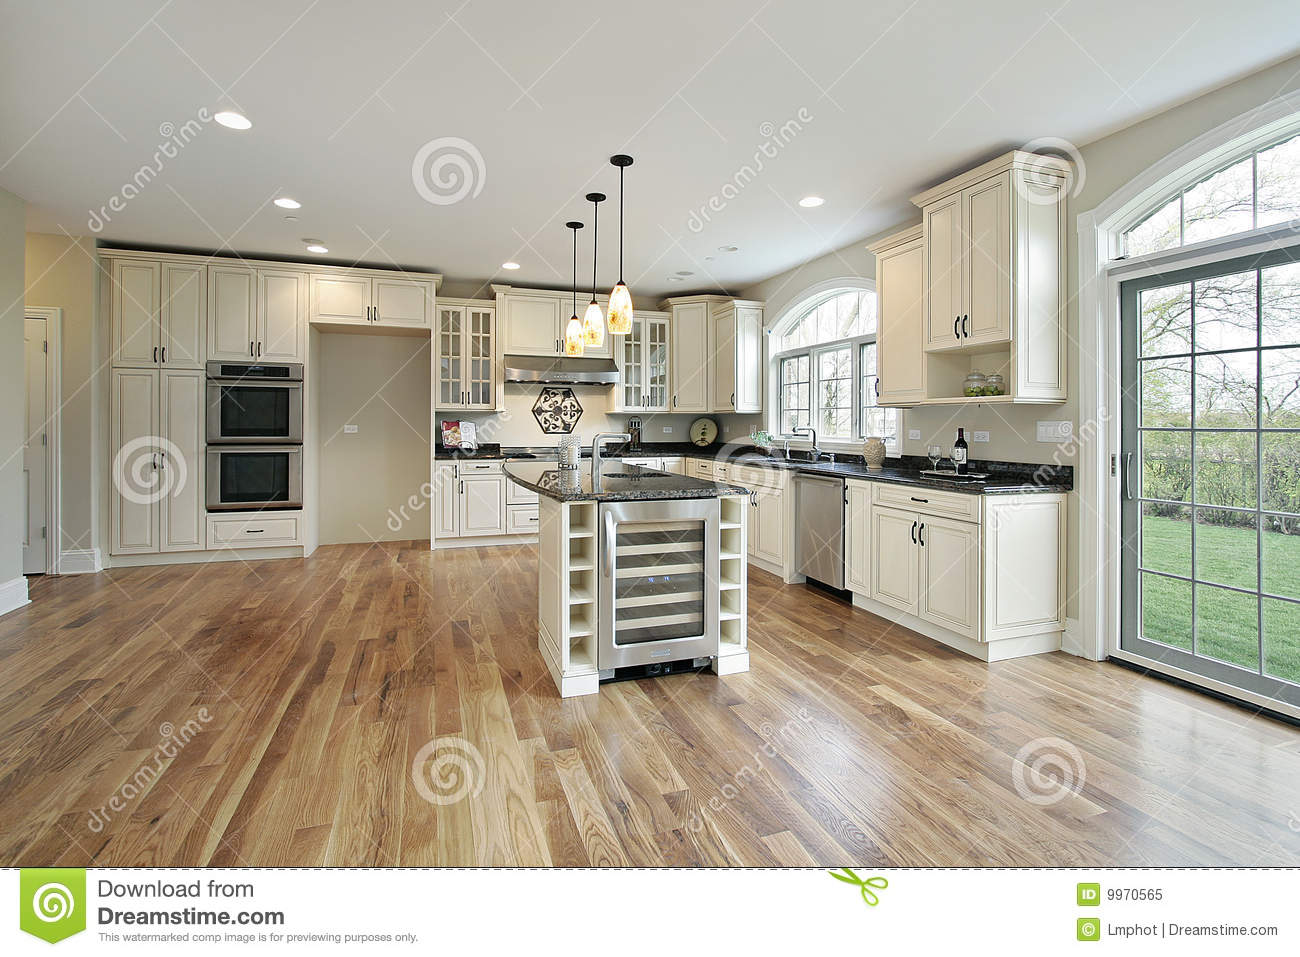 Kitchen in new construction home royalty free stock photo for Building a new kitchen